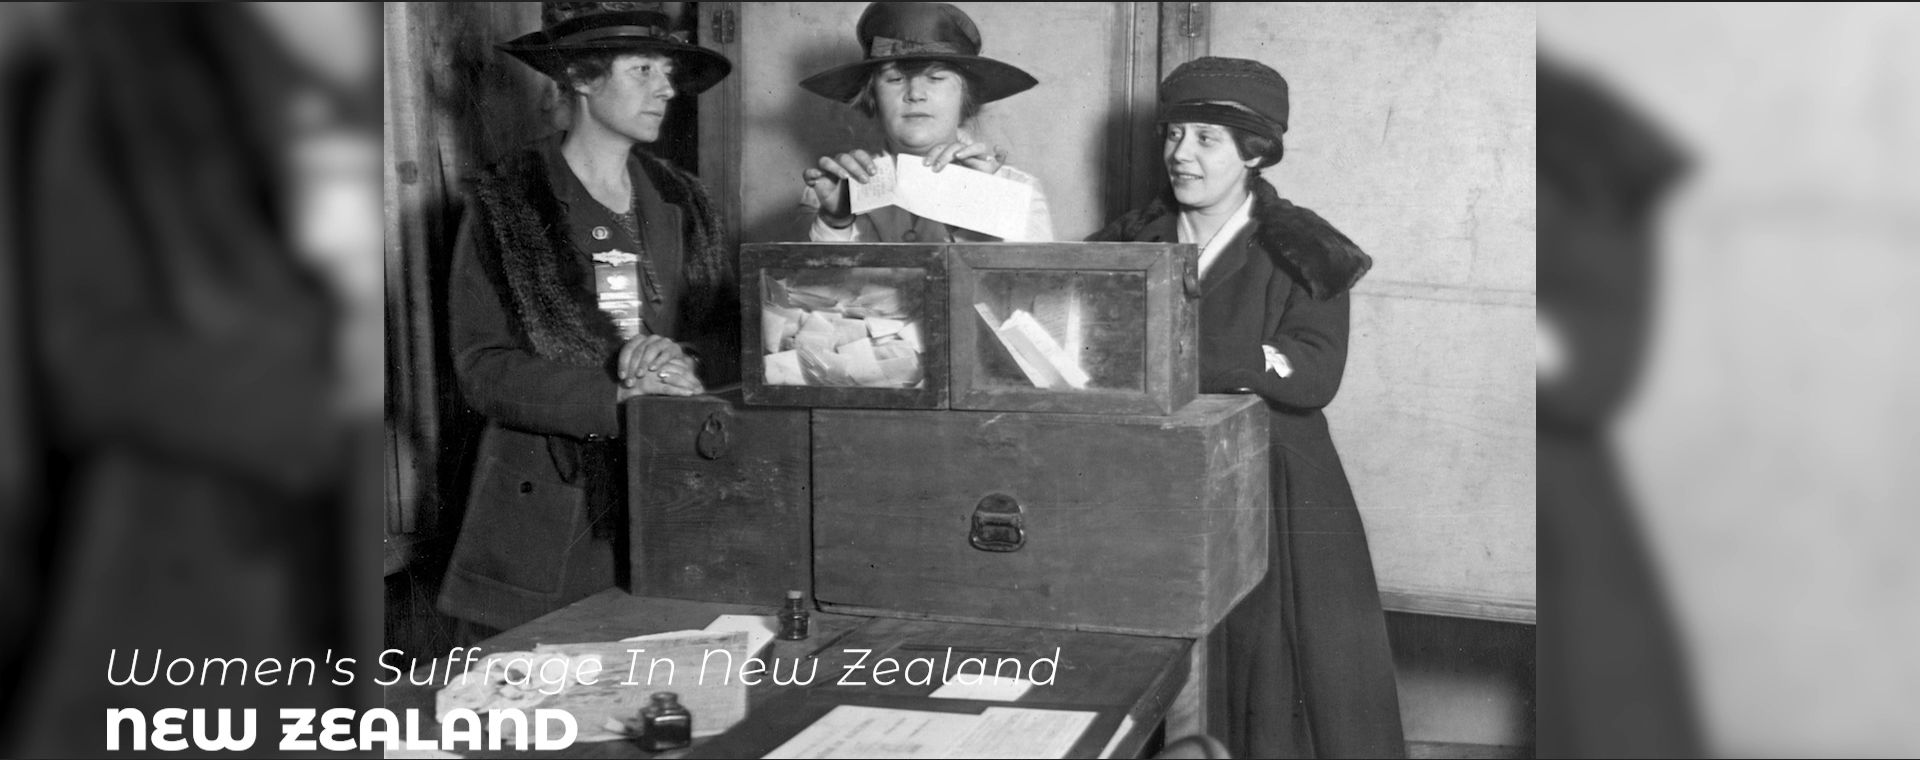 WOMEN'S SUFFRAGE IN NEW ZEALAND